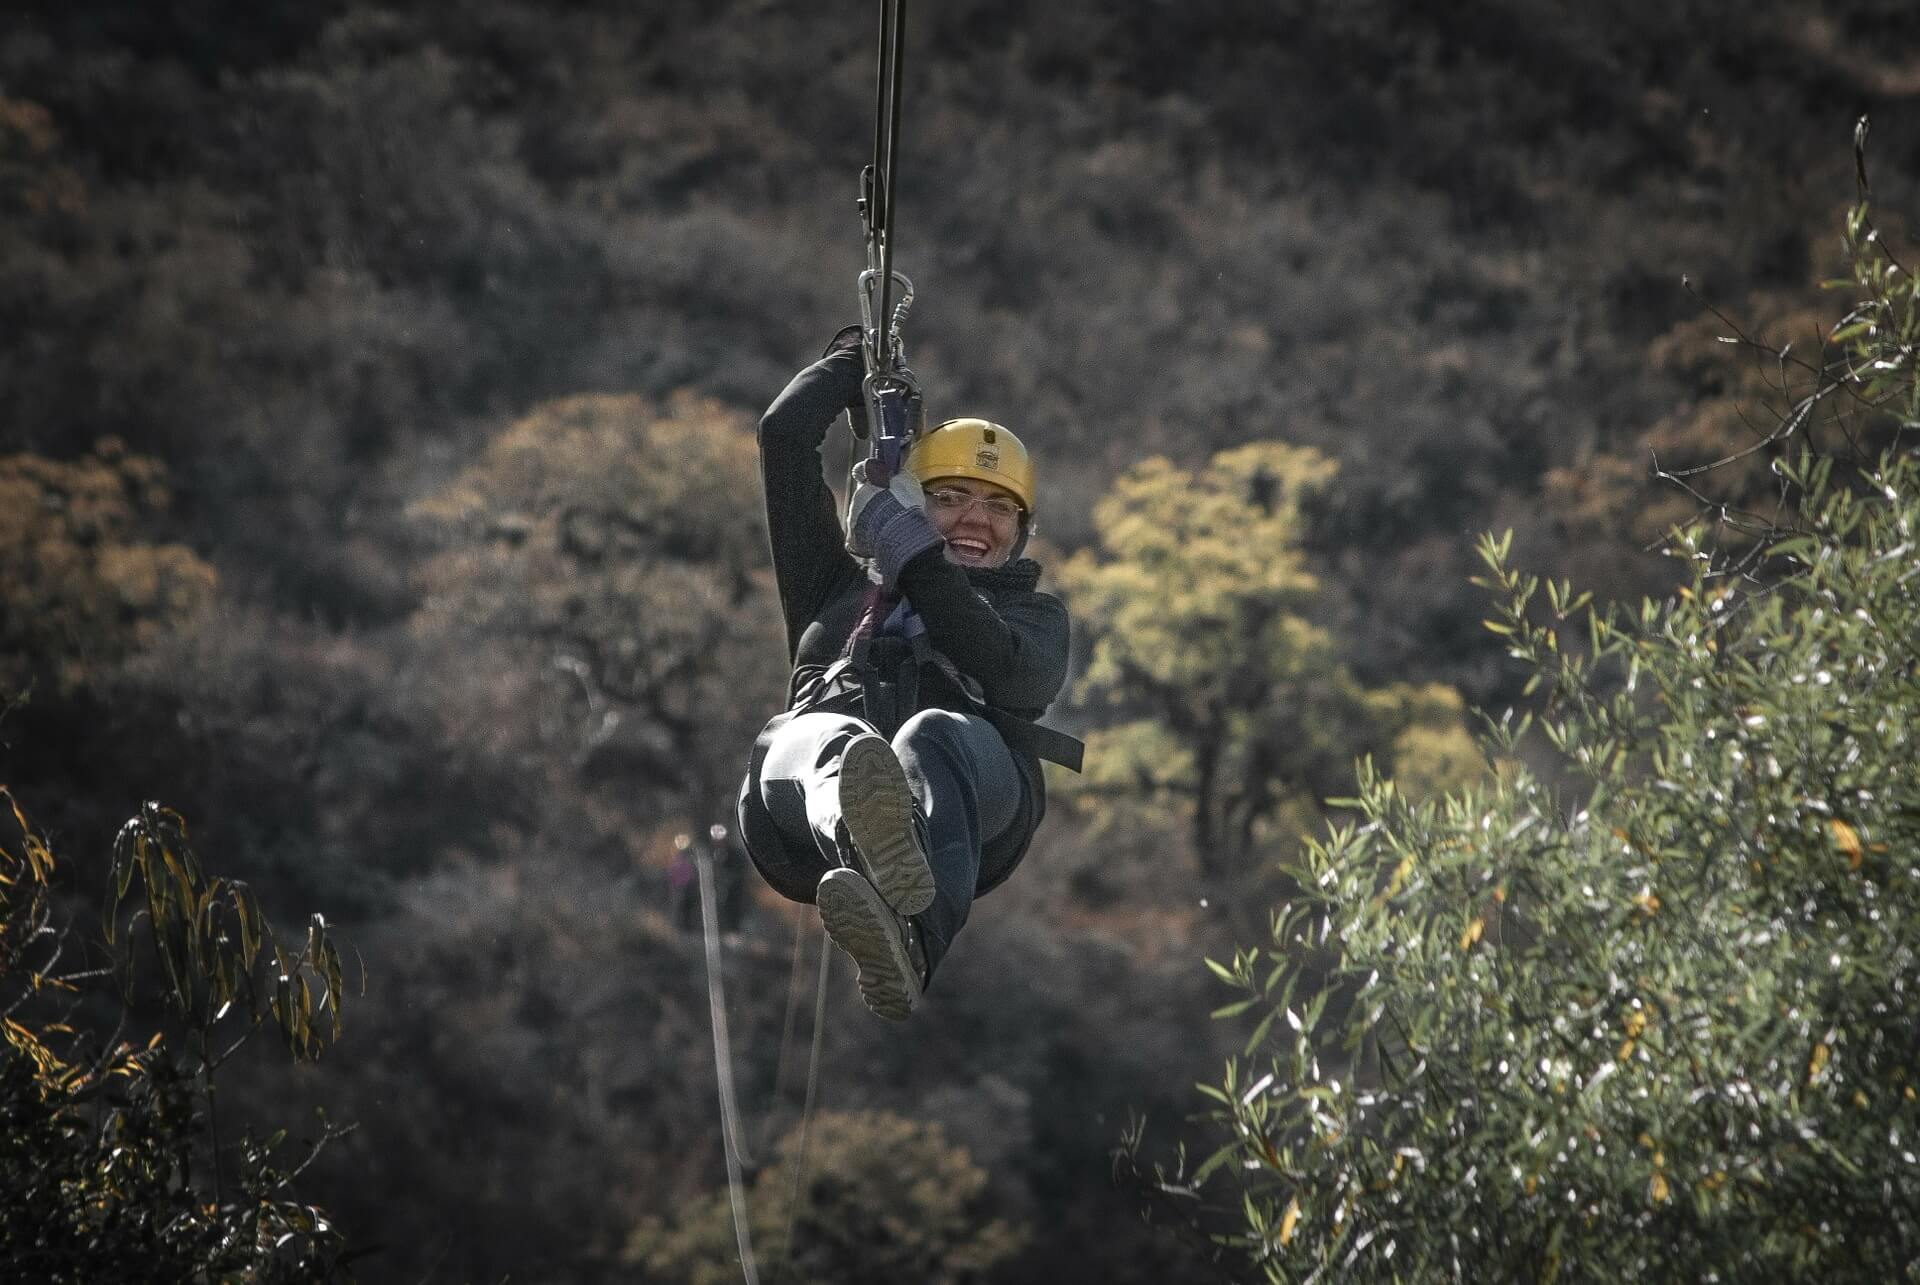 The best ziplines around: the Great Wall